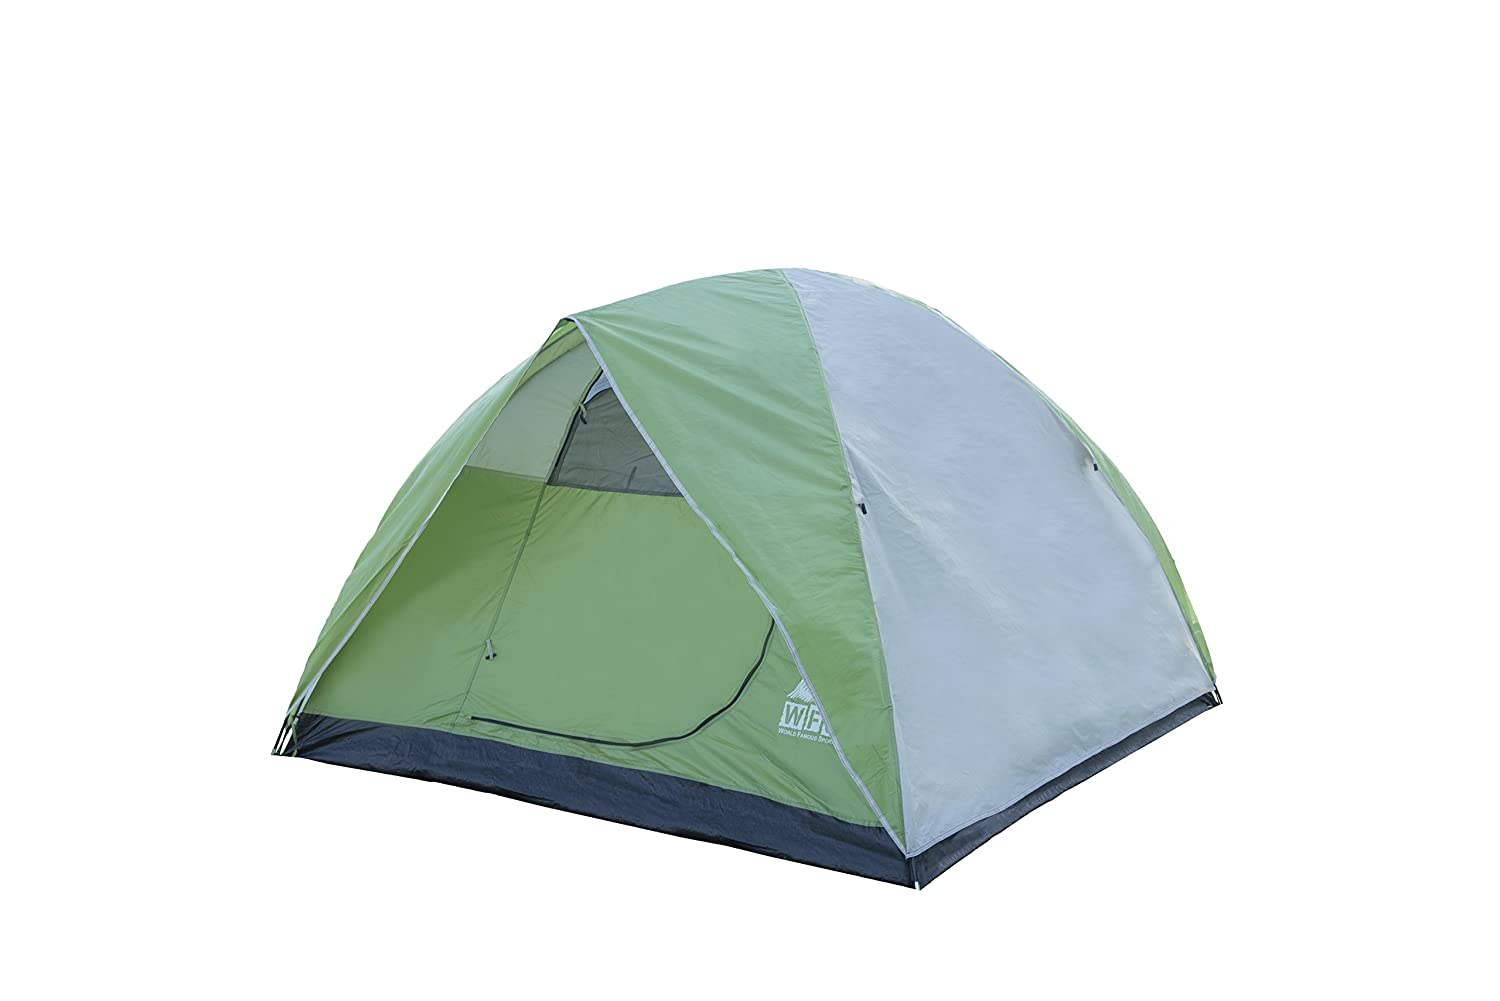 7dae5ba6cb Amazon.com : World Famous Sports 3 Person Camping Tent, Lime Green : Family  Tents : Sports & Outdoors